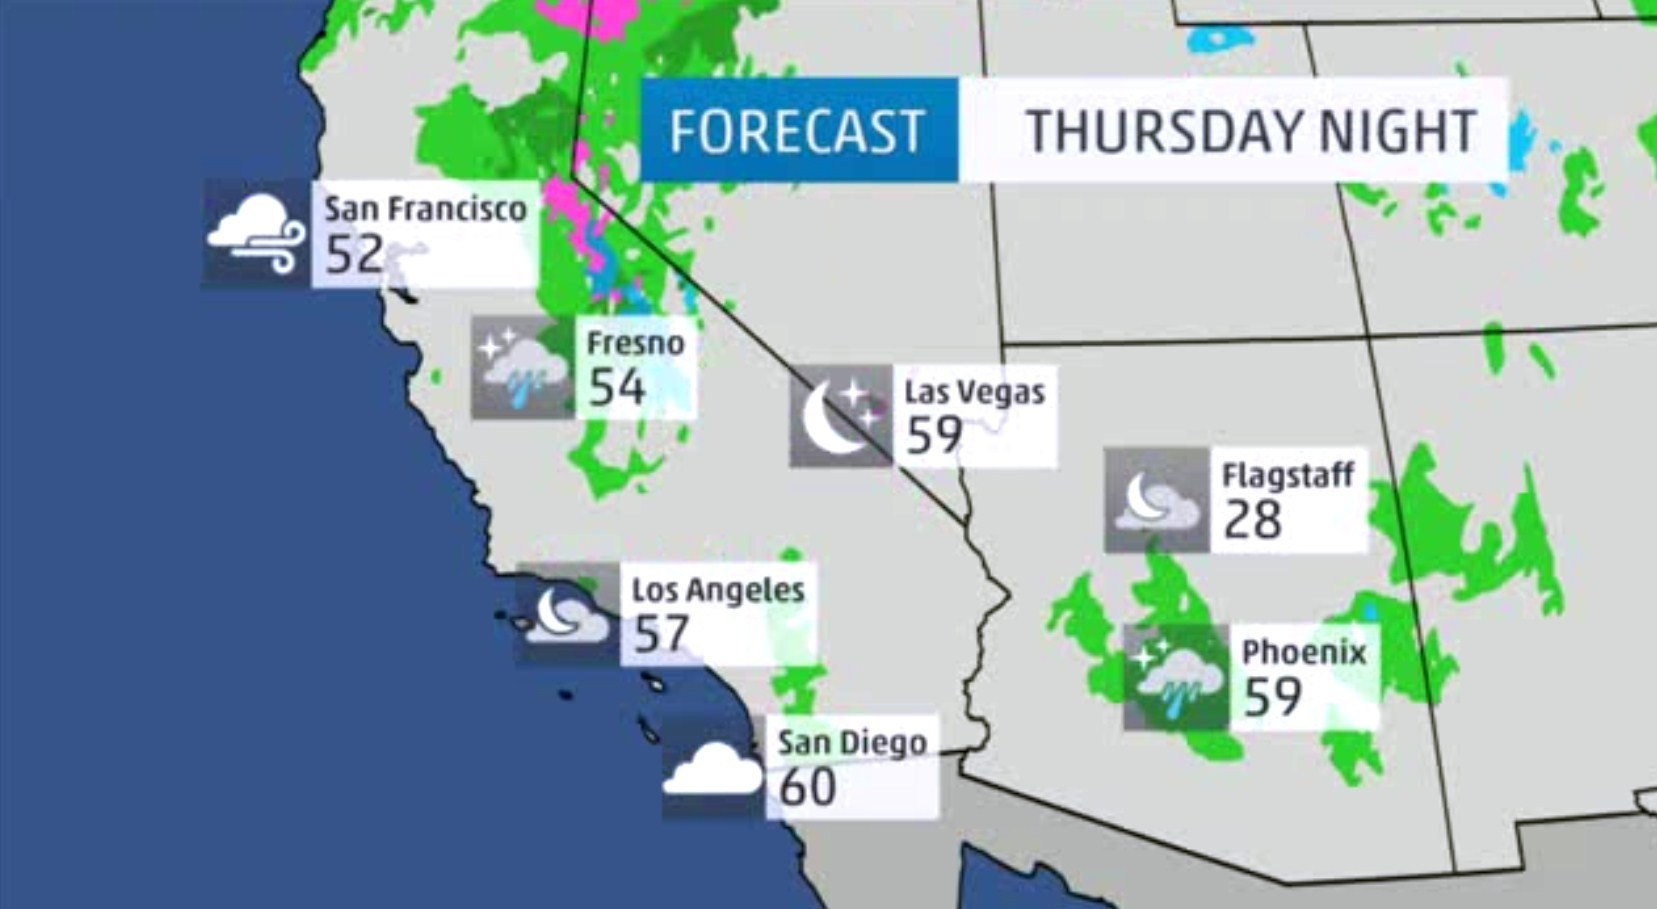 San Diego Weather Map Today.Weather Forecast La Times